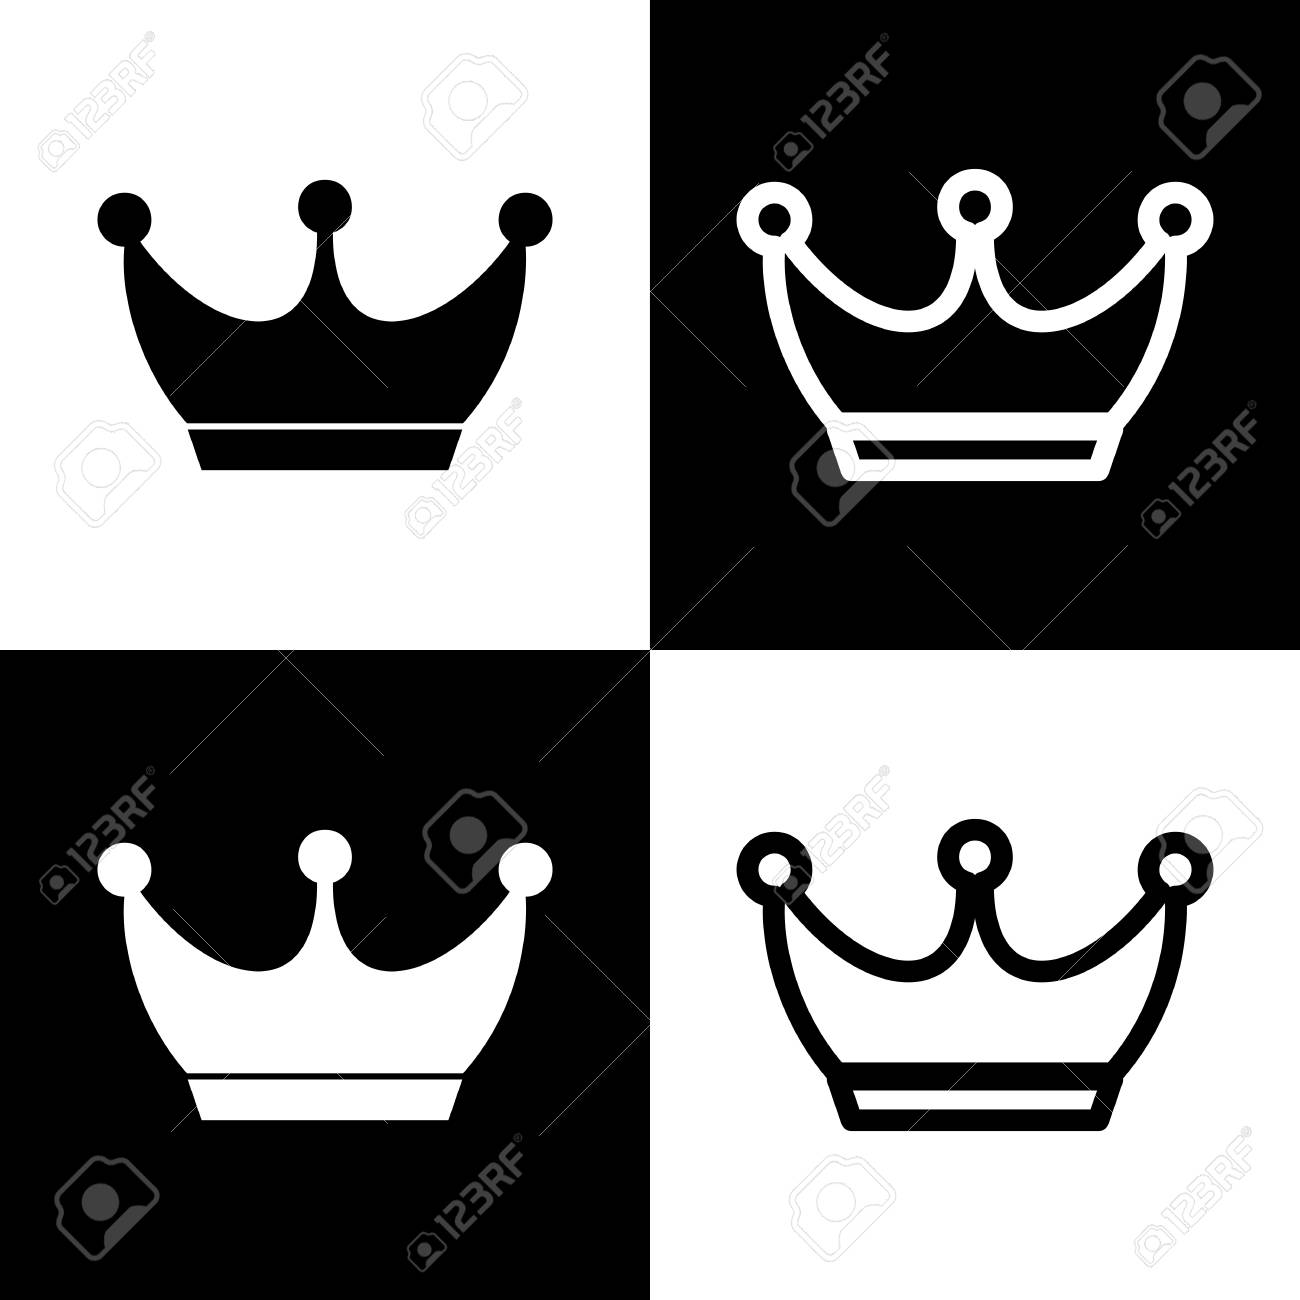 King Crown Sign Vector Black And White Icons And Line Icon Stock